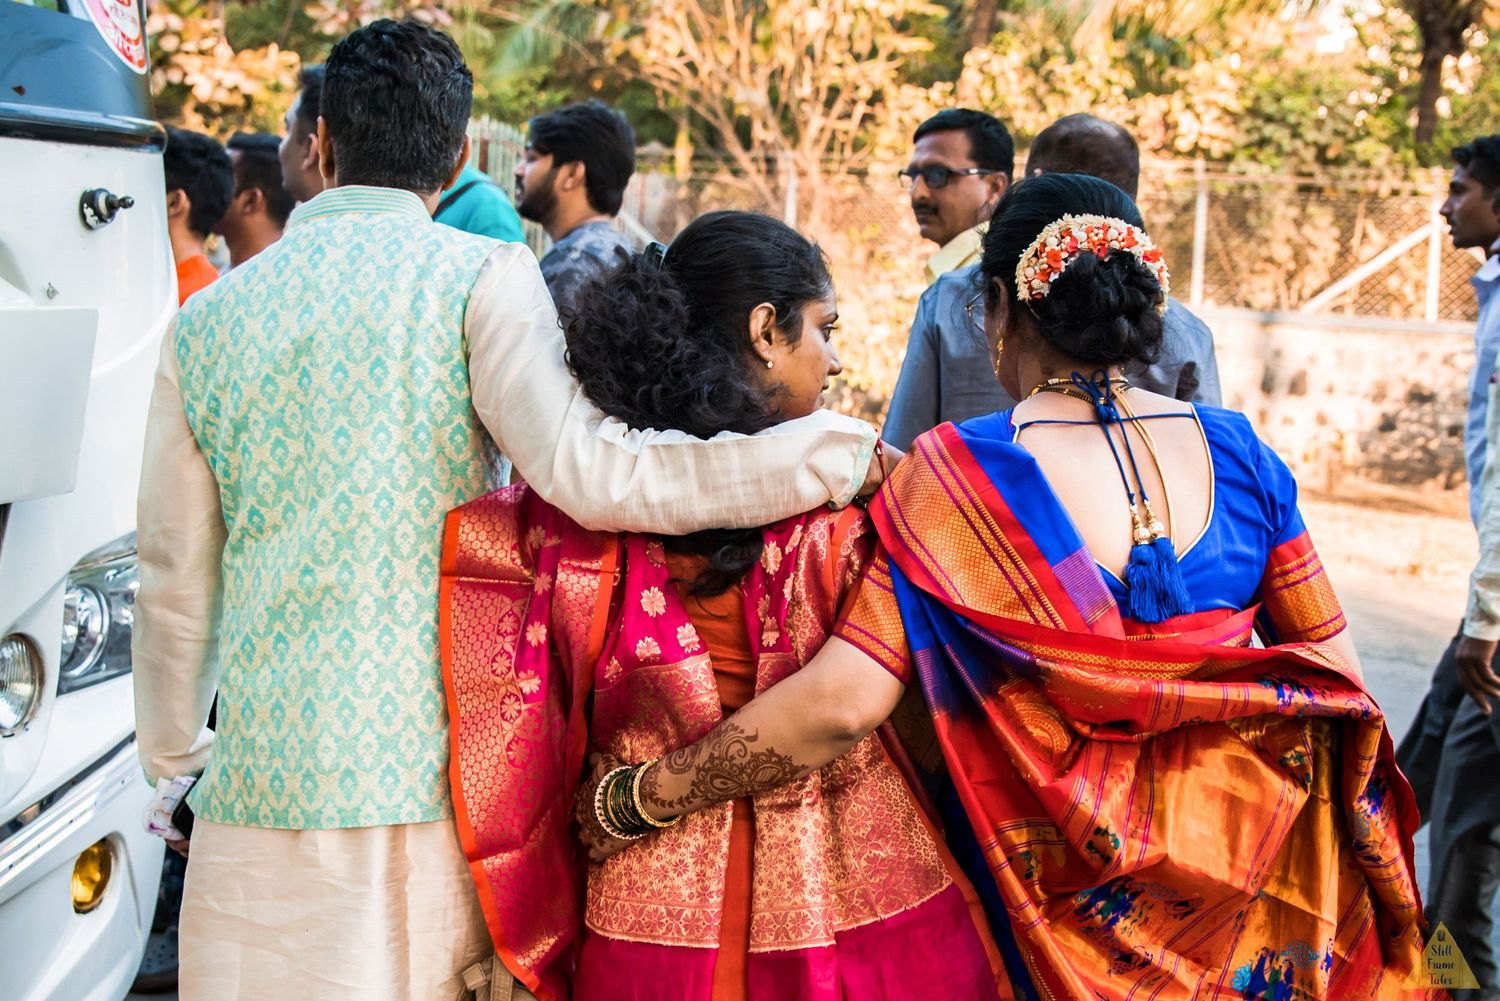 Bride tugging with her parents at her viddai ceremony at a destination wedding